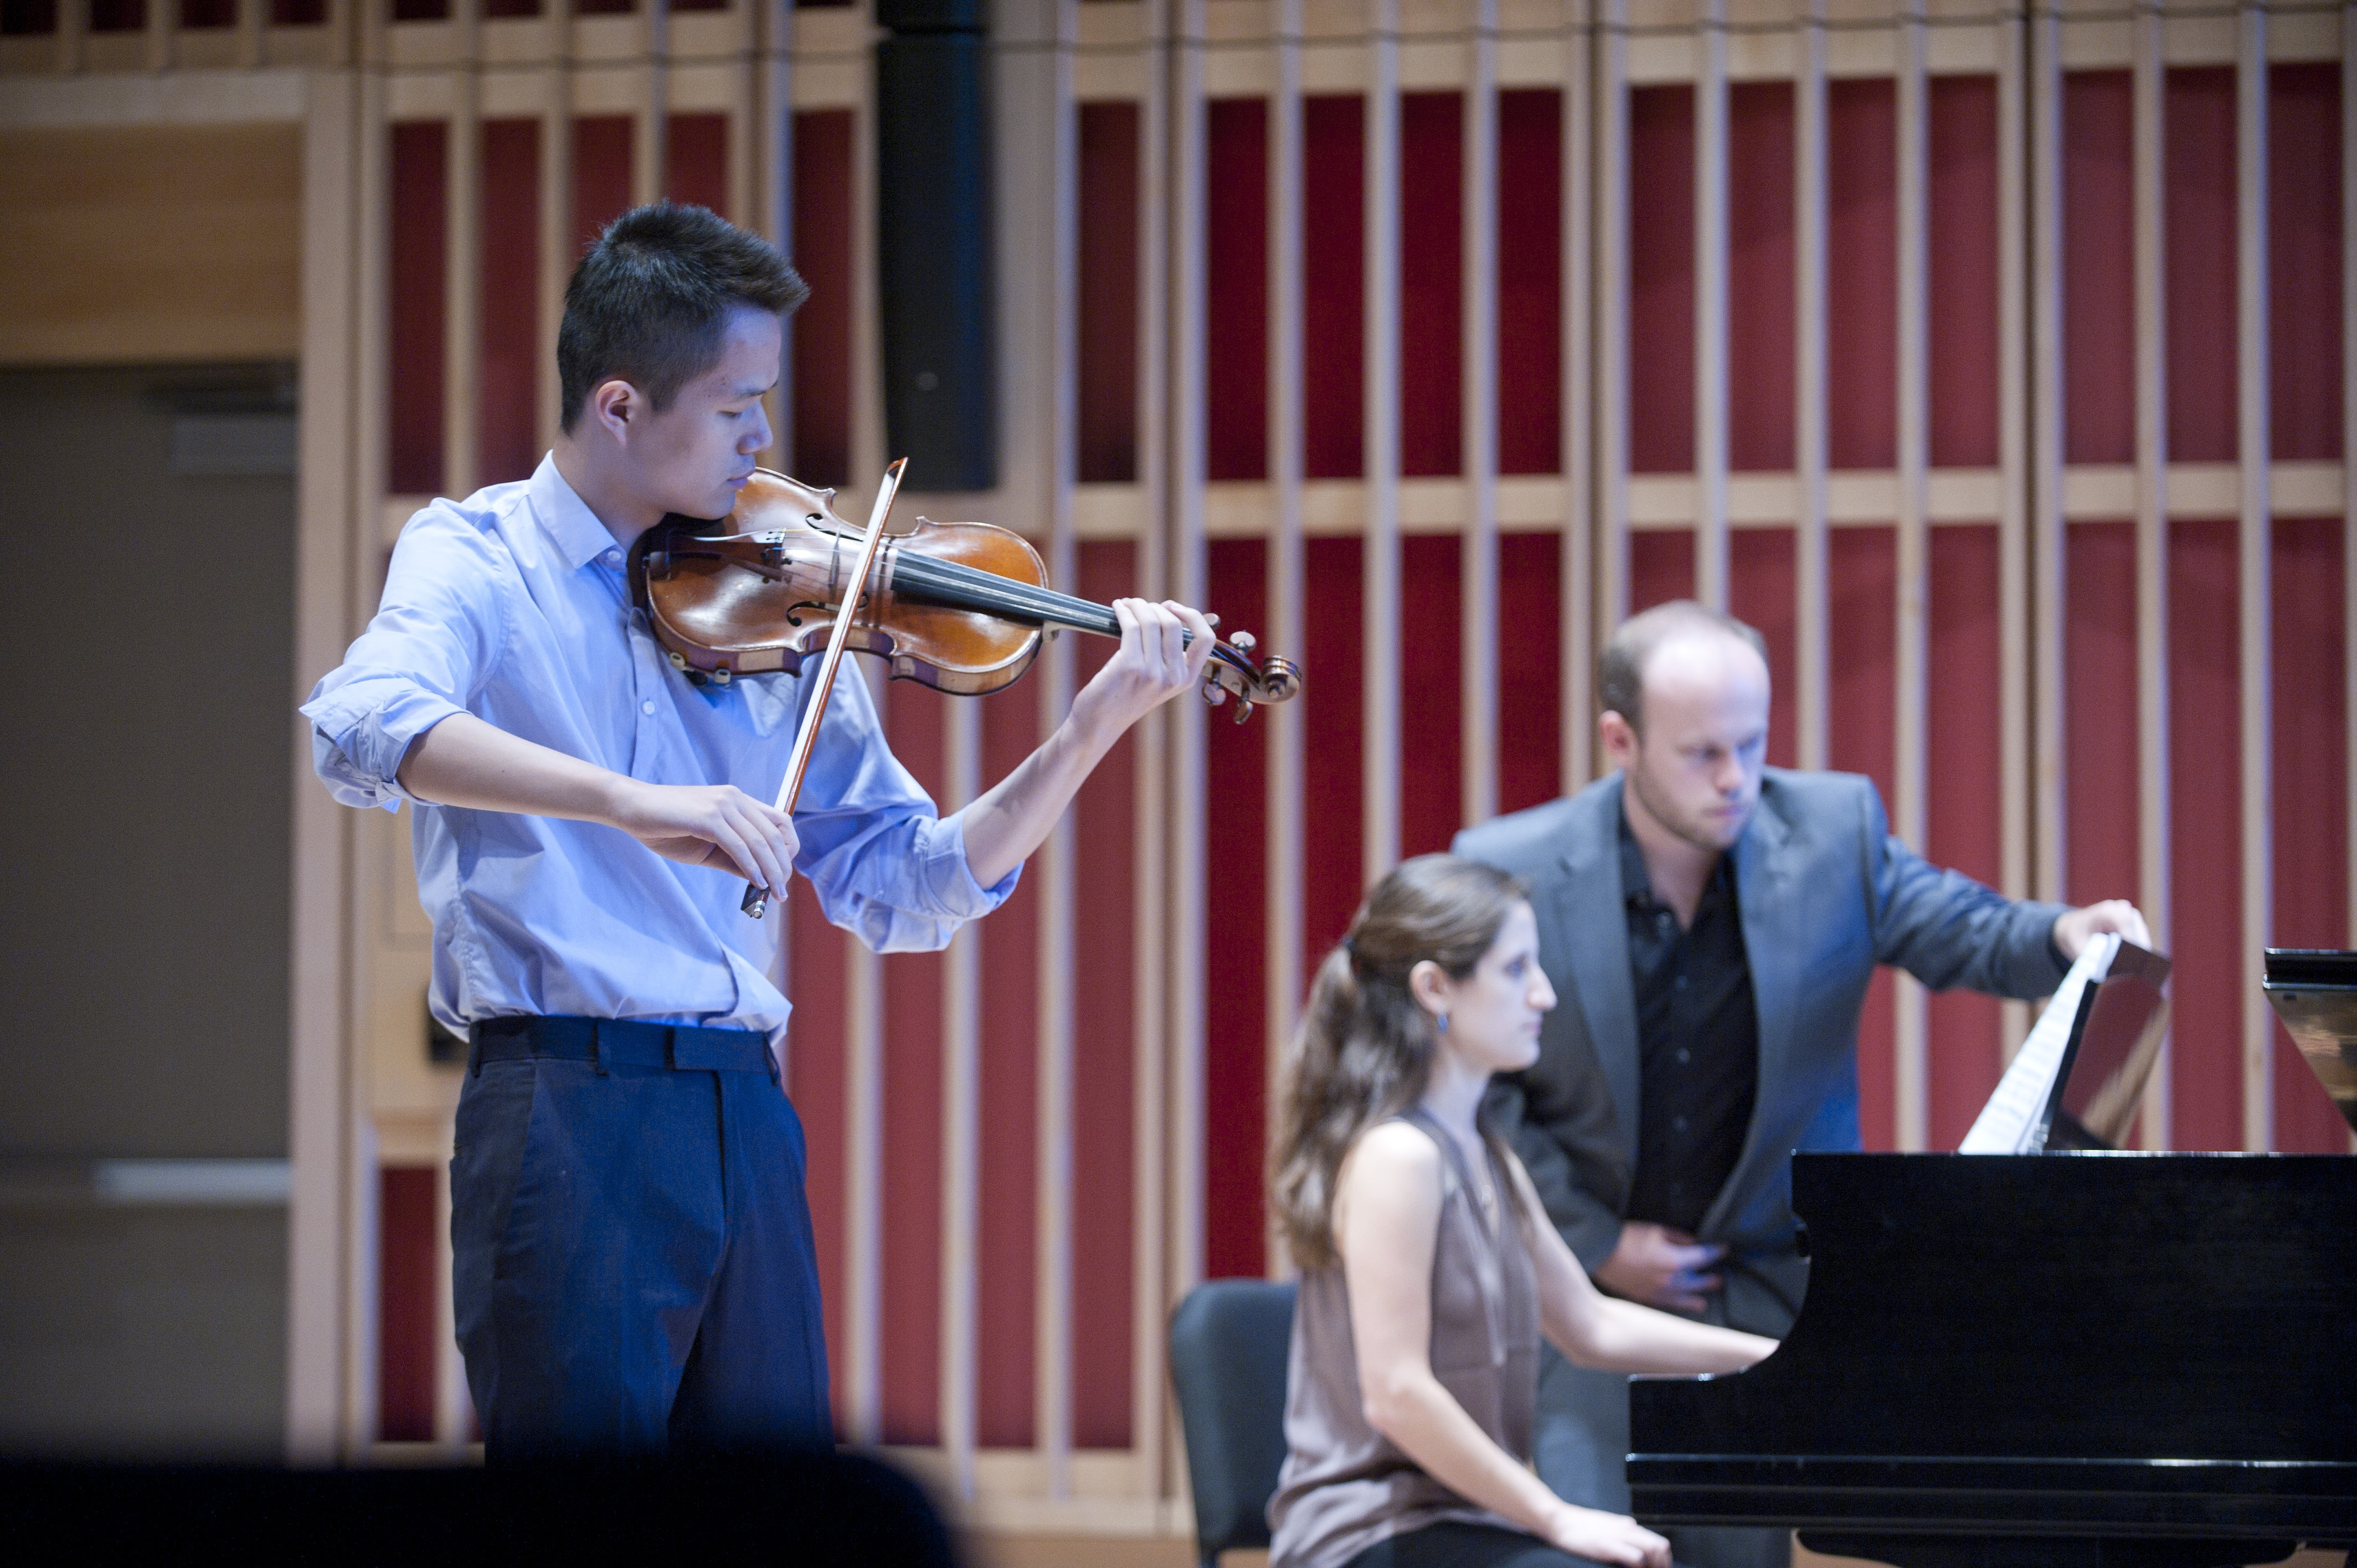 [Noon Concert: Works for Piano, Violin, and Voice by Chopin, J.S. Bach, Sibelius, and Charles Ives]